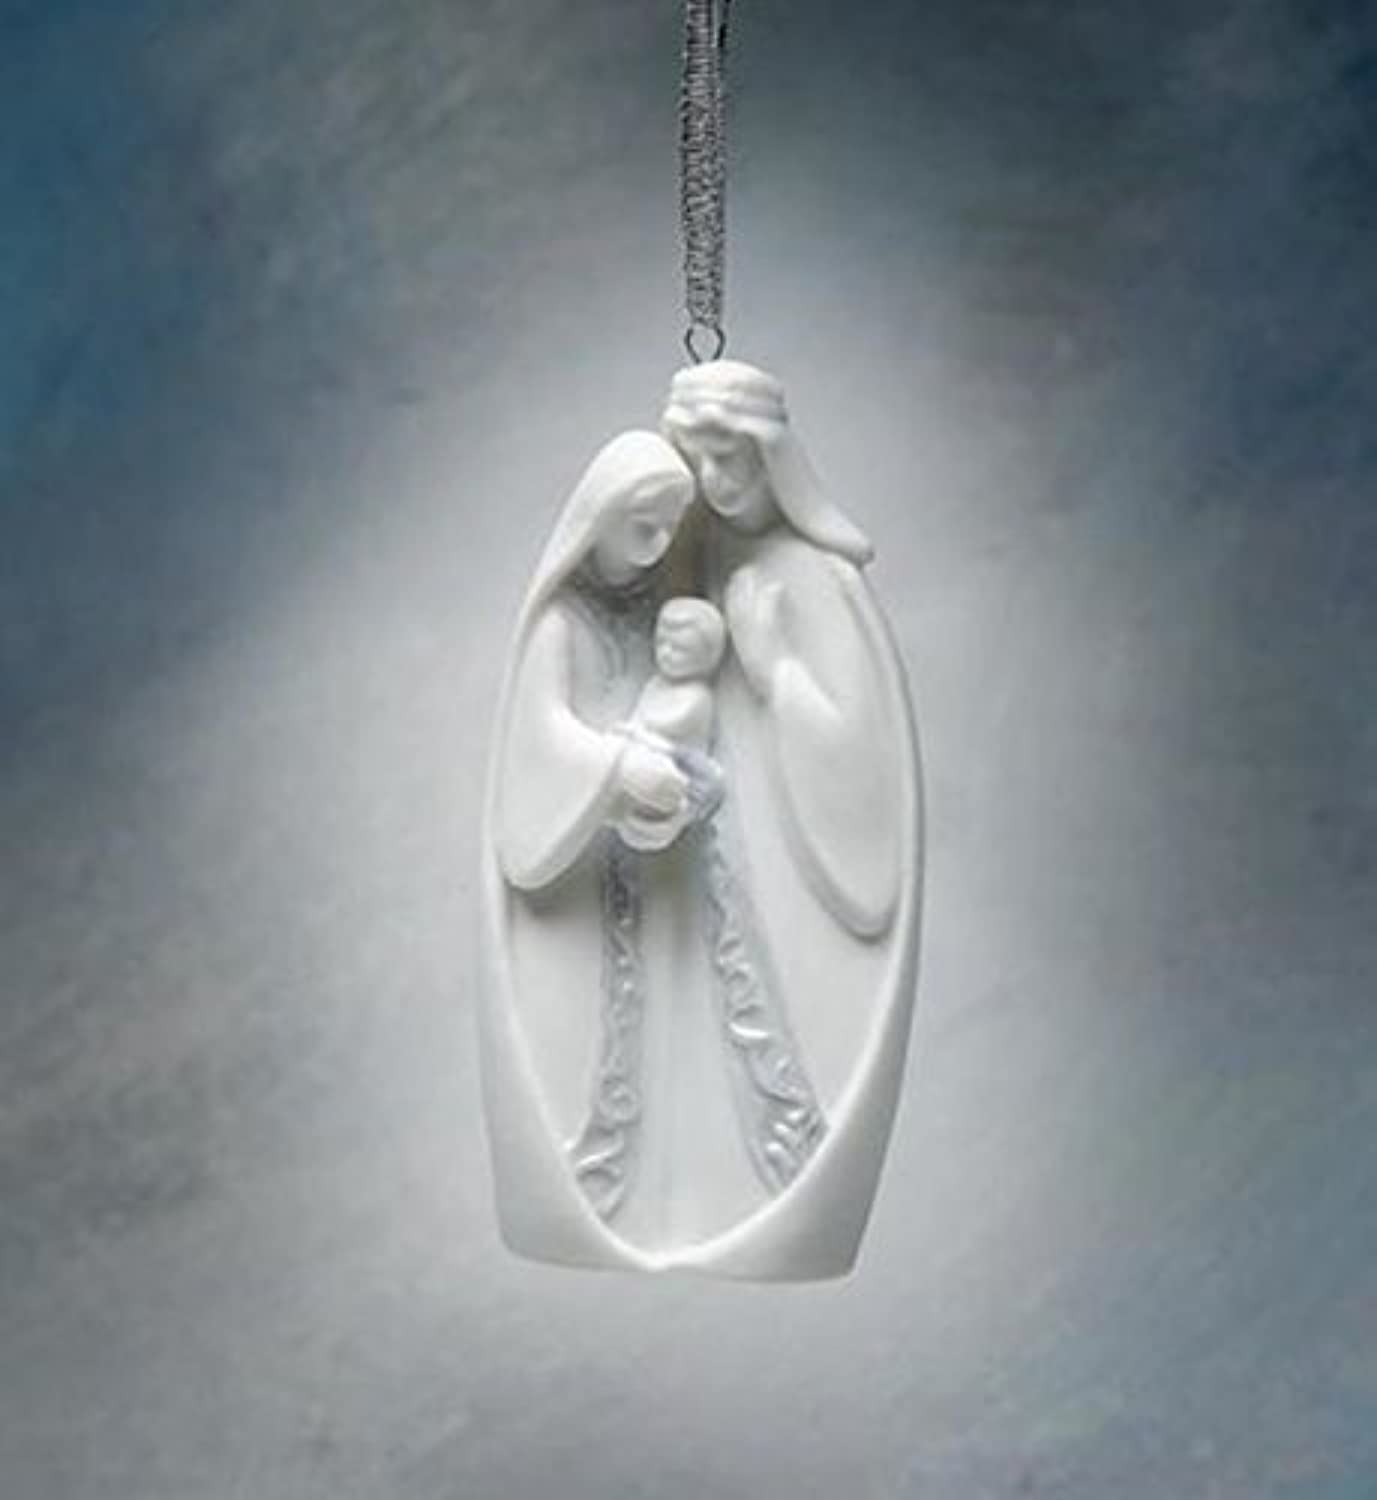 4.13 Inch Marry and Joseph Holding Baby Jesus Tree Ornament by ATD [並行輸入品]